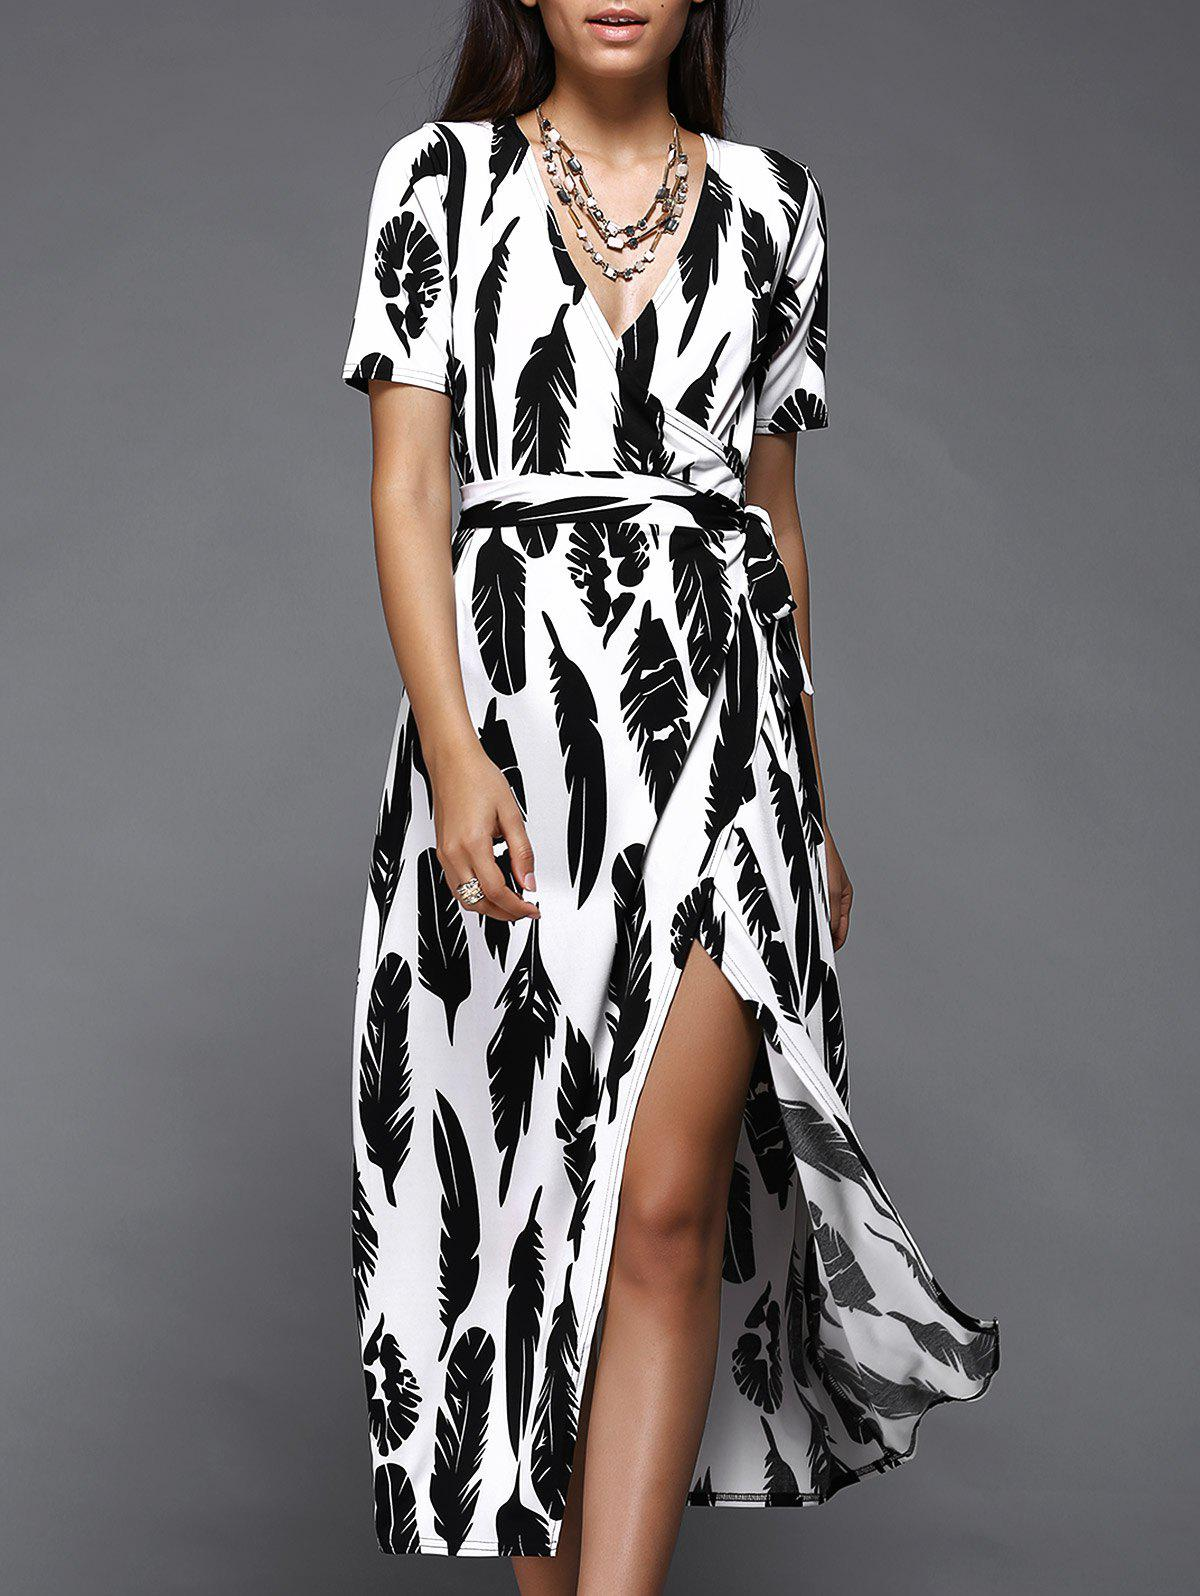 Stylish Feather Print Wrap Dress For Women